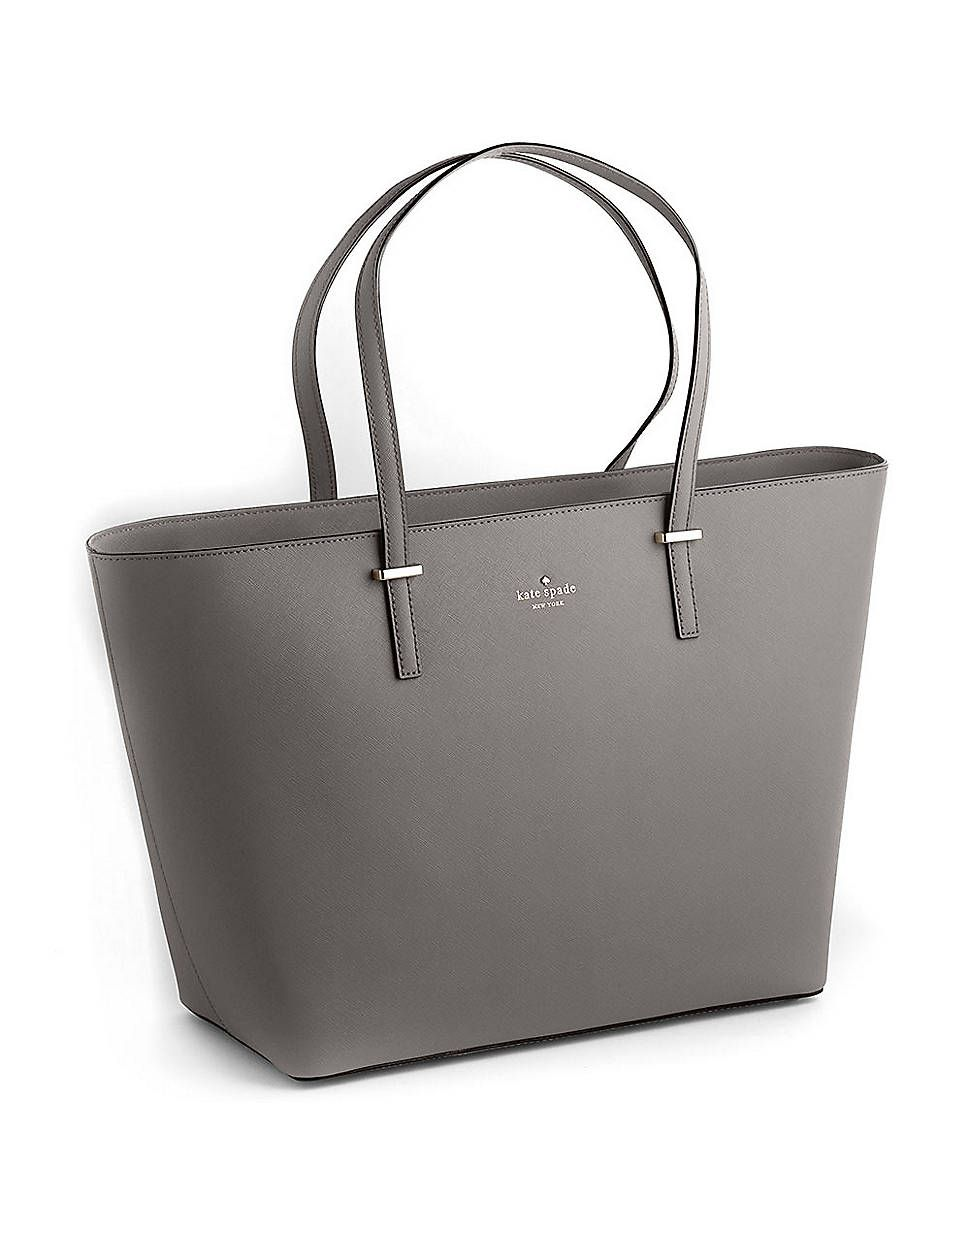 fc8ab02ff Kate Spade Cedar Street Medium Harmony Leather Tote Bag in Gray (grey) |  Lyst